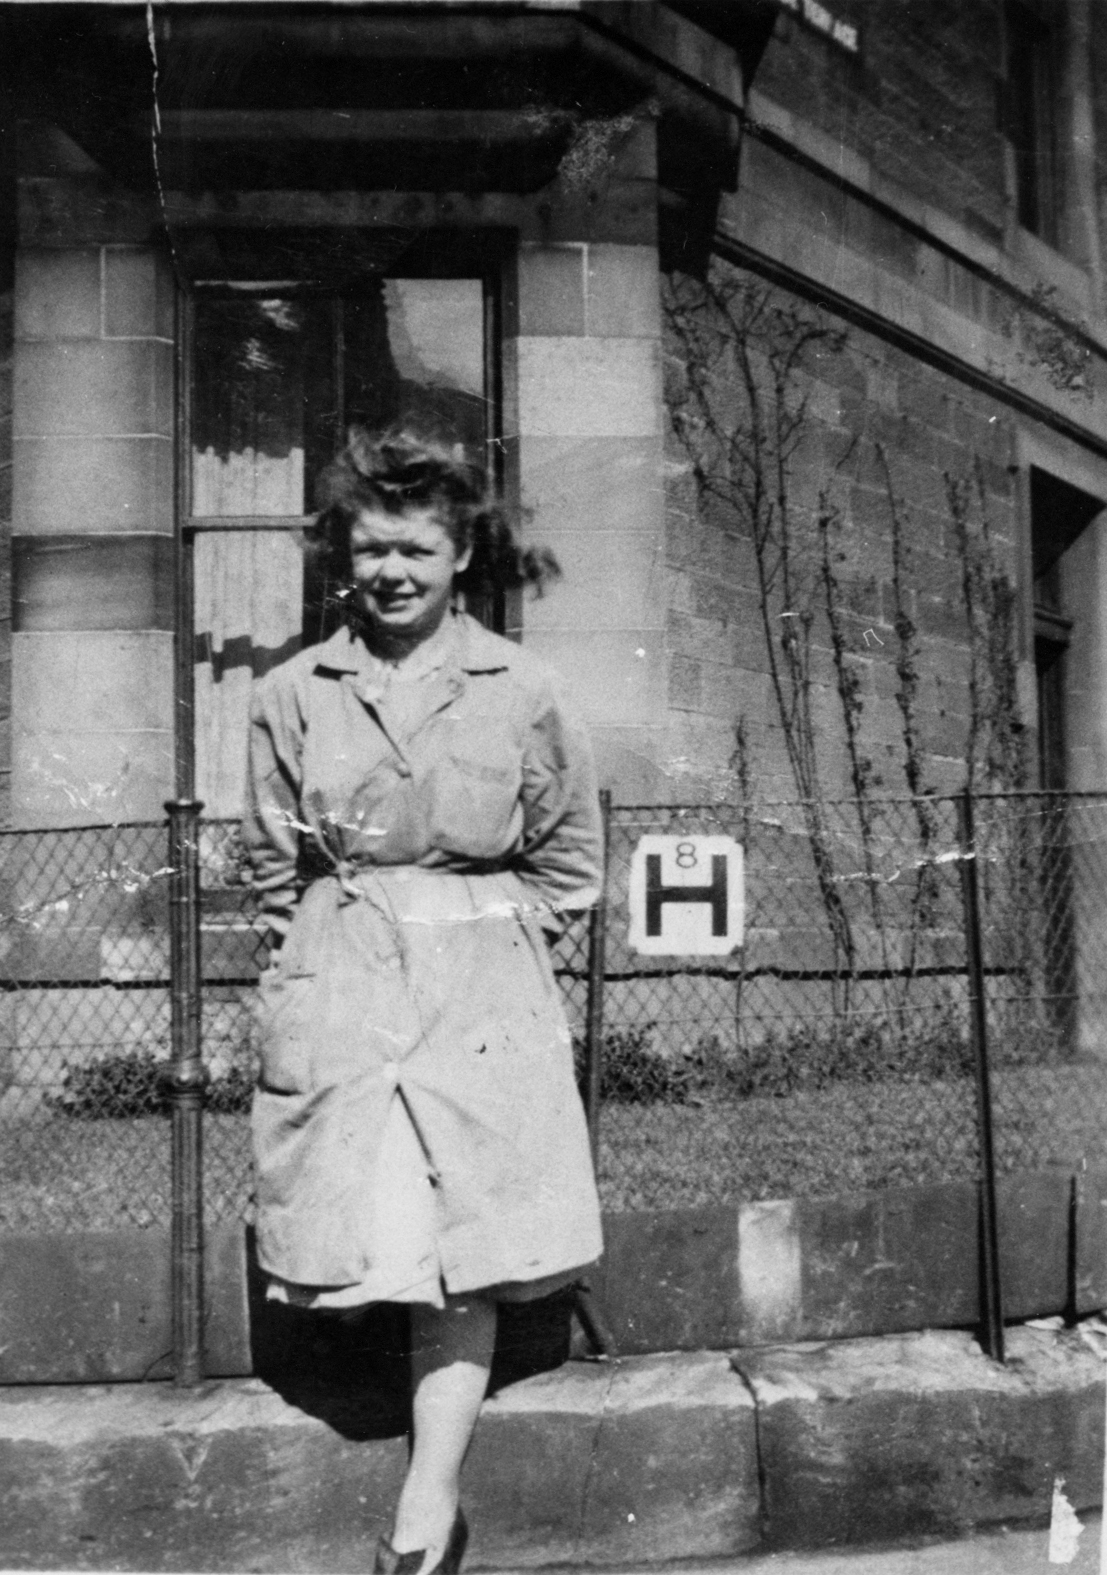 Young Woman Taking A Break At Nelson's Printing Works On Corner Of Parkside Terrace c.1948